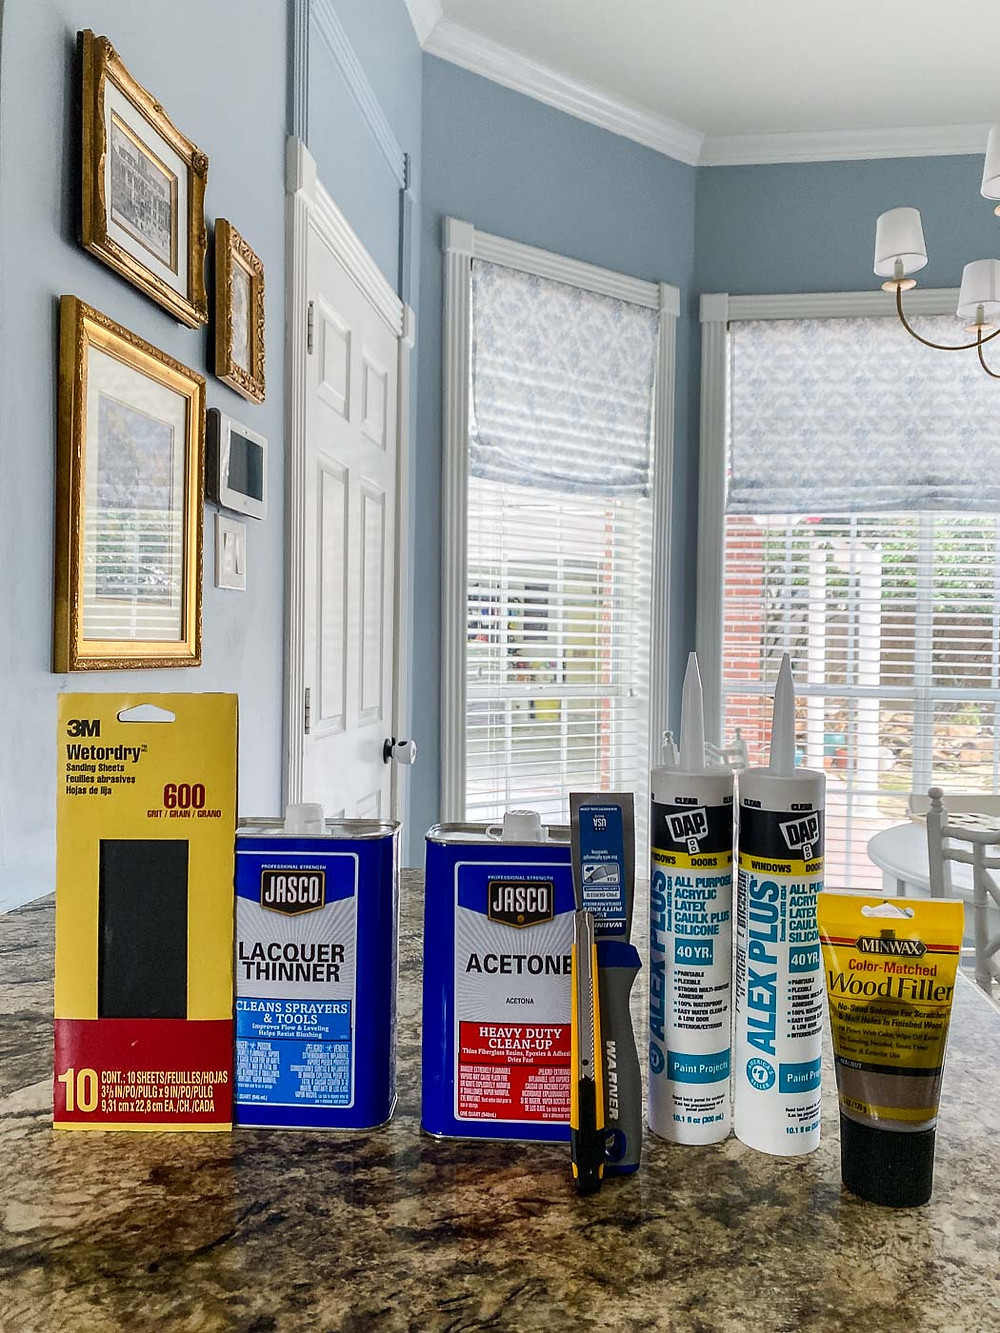 How to paint countertops to look like marble, giani paint kit